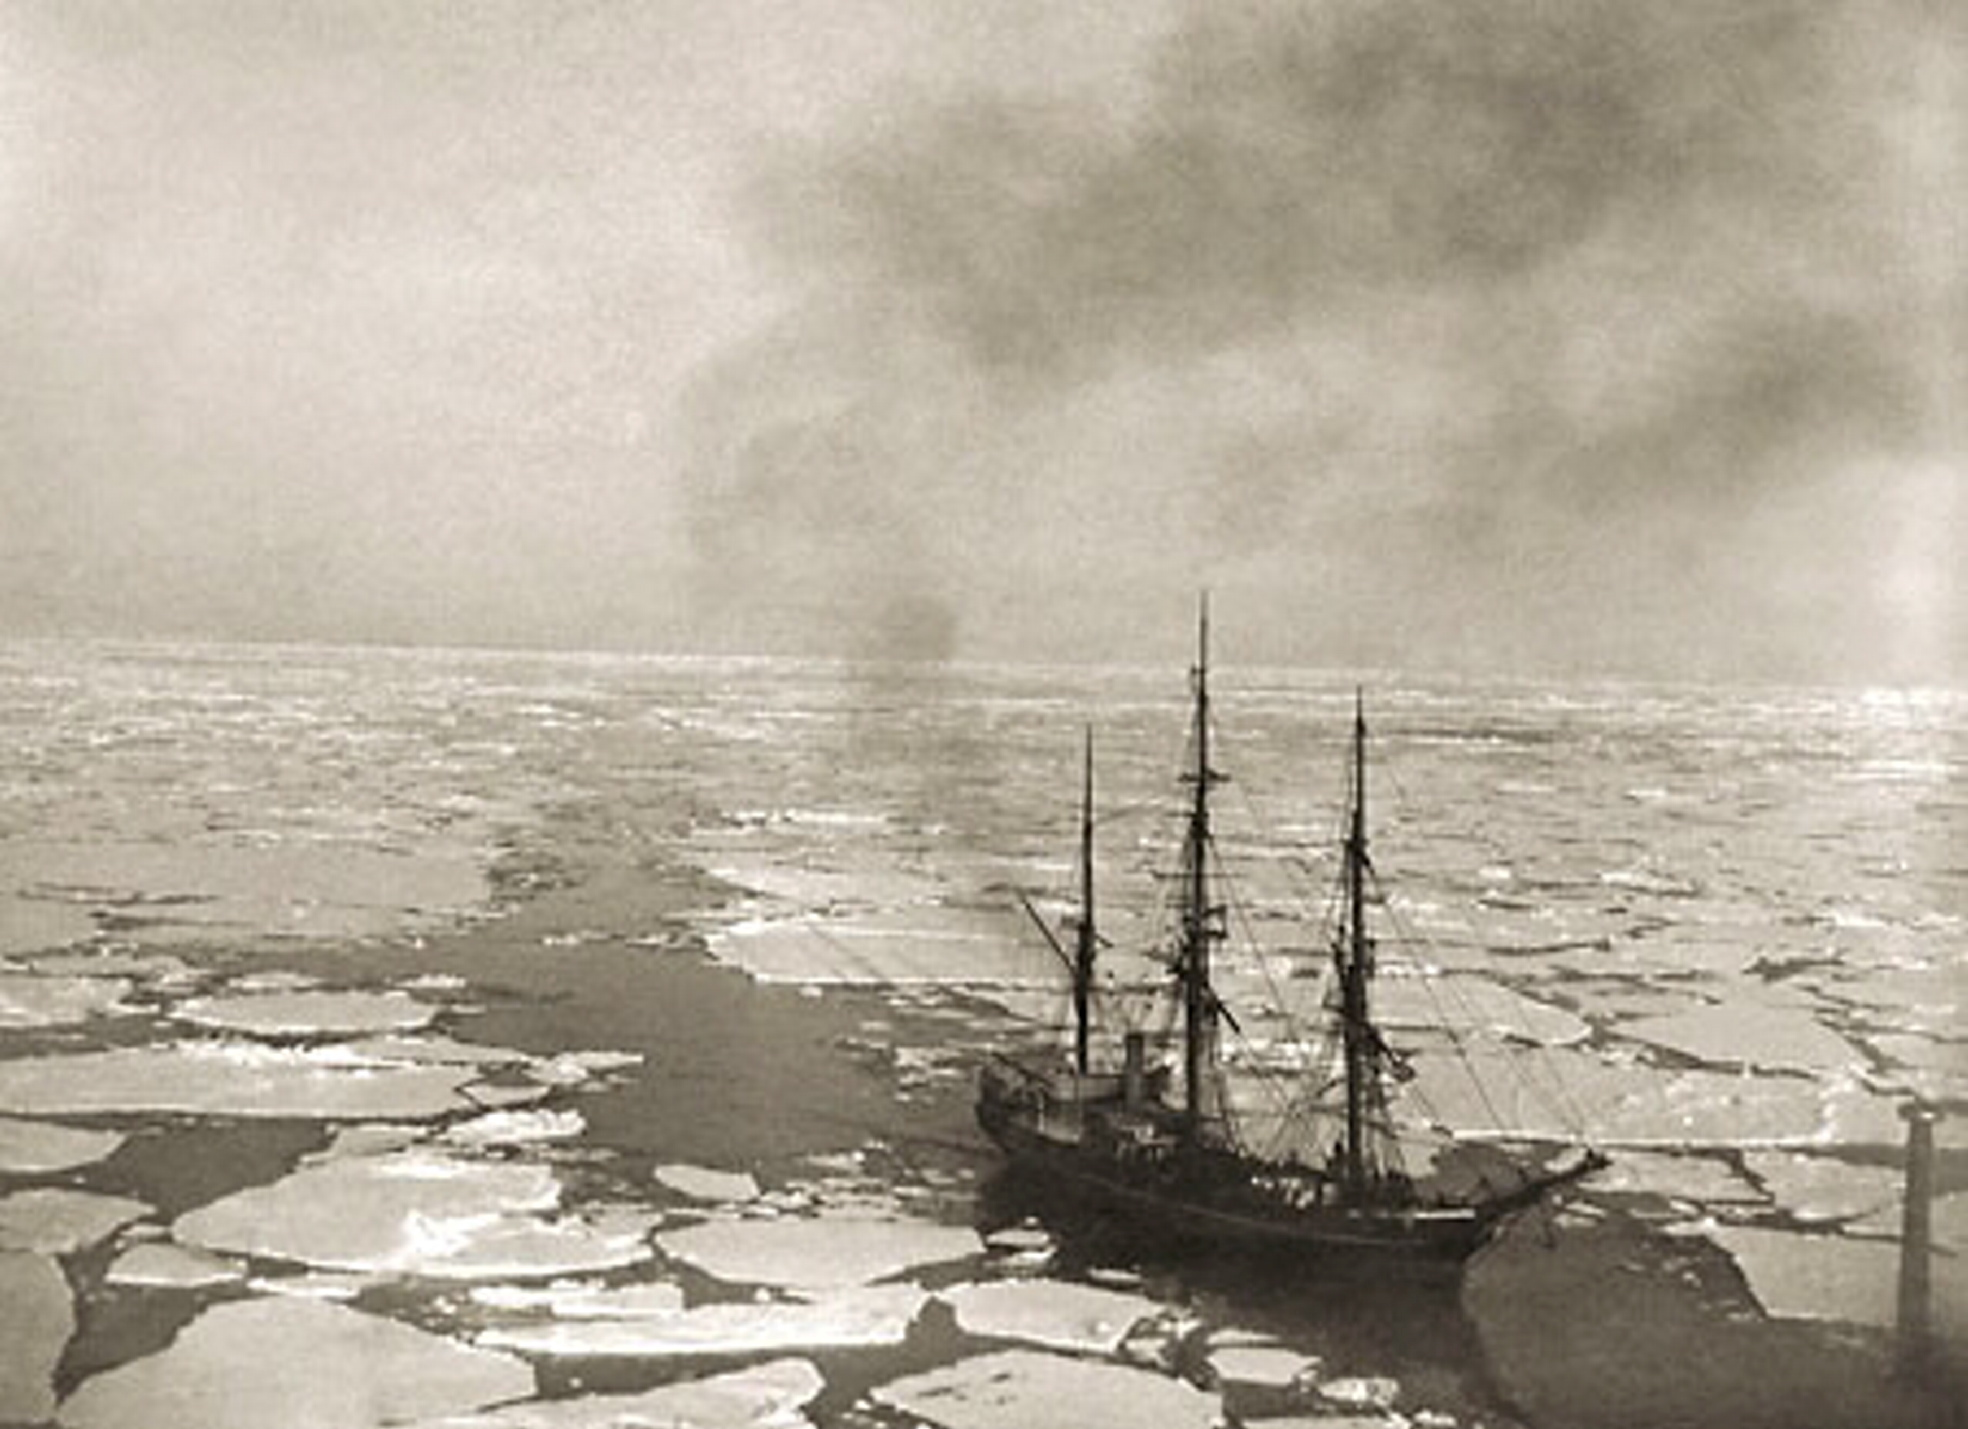 An image from Aberdeen Universities Special Collections of William Clark Souters' trip to Antarctic in 1903-1904.